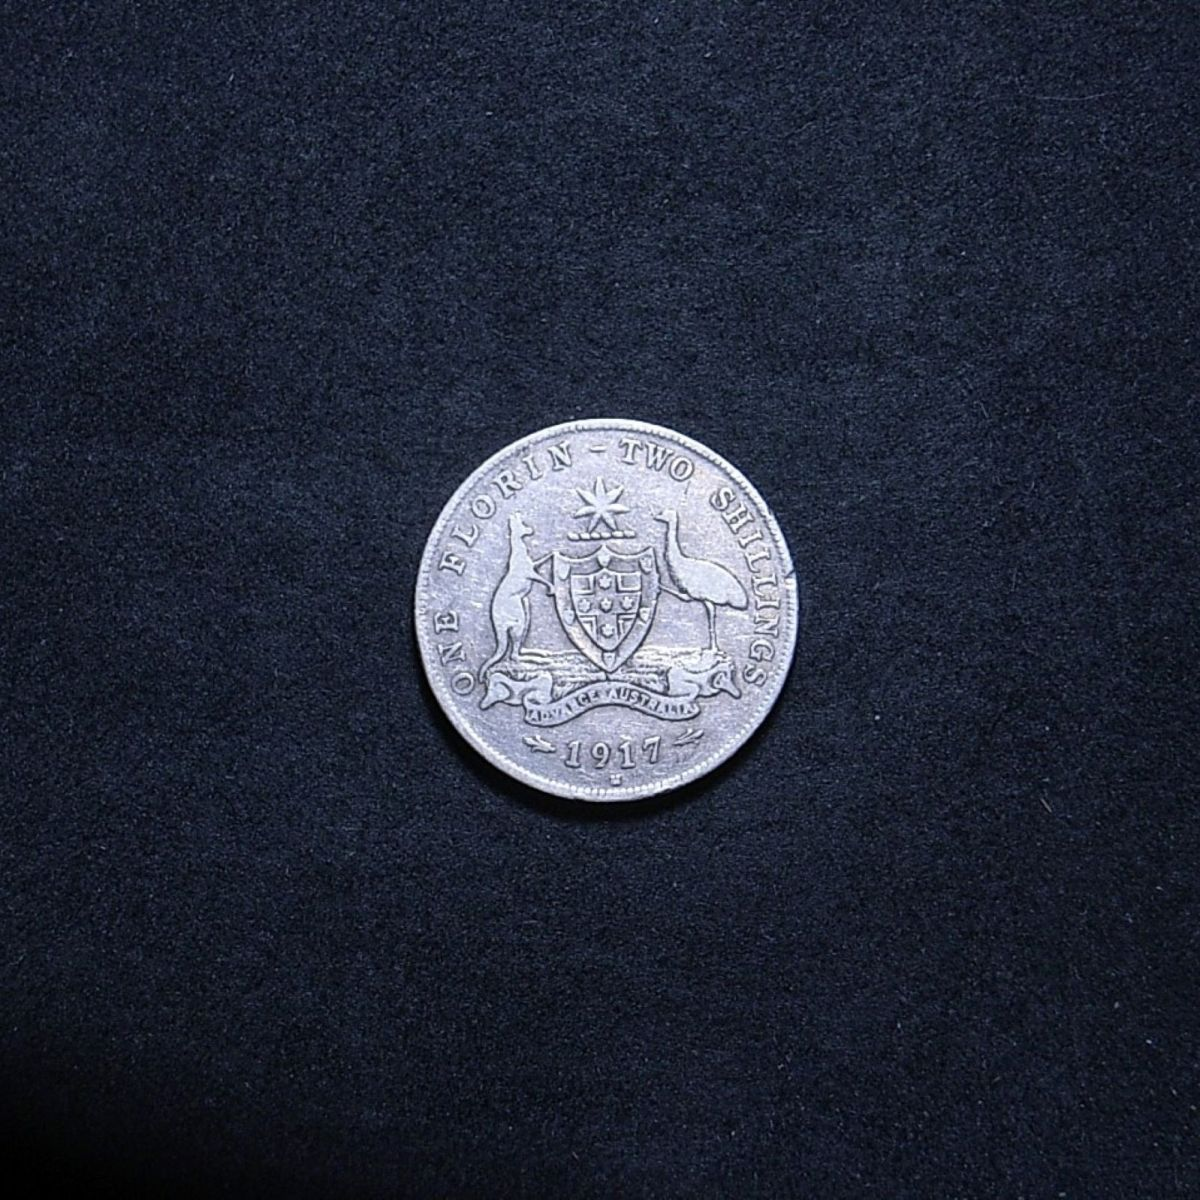 Aussie 1917M florin reverse showing overall appearance